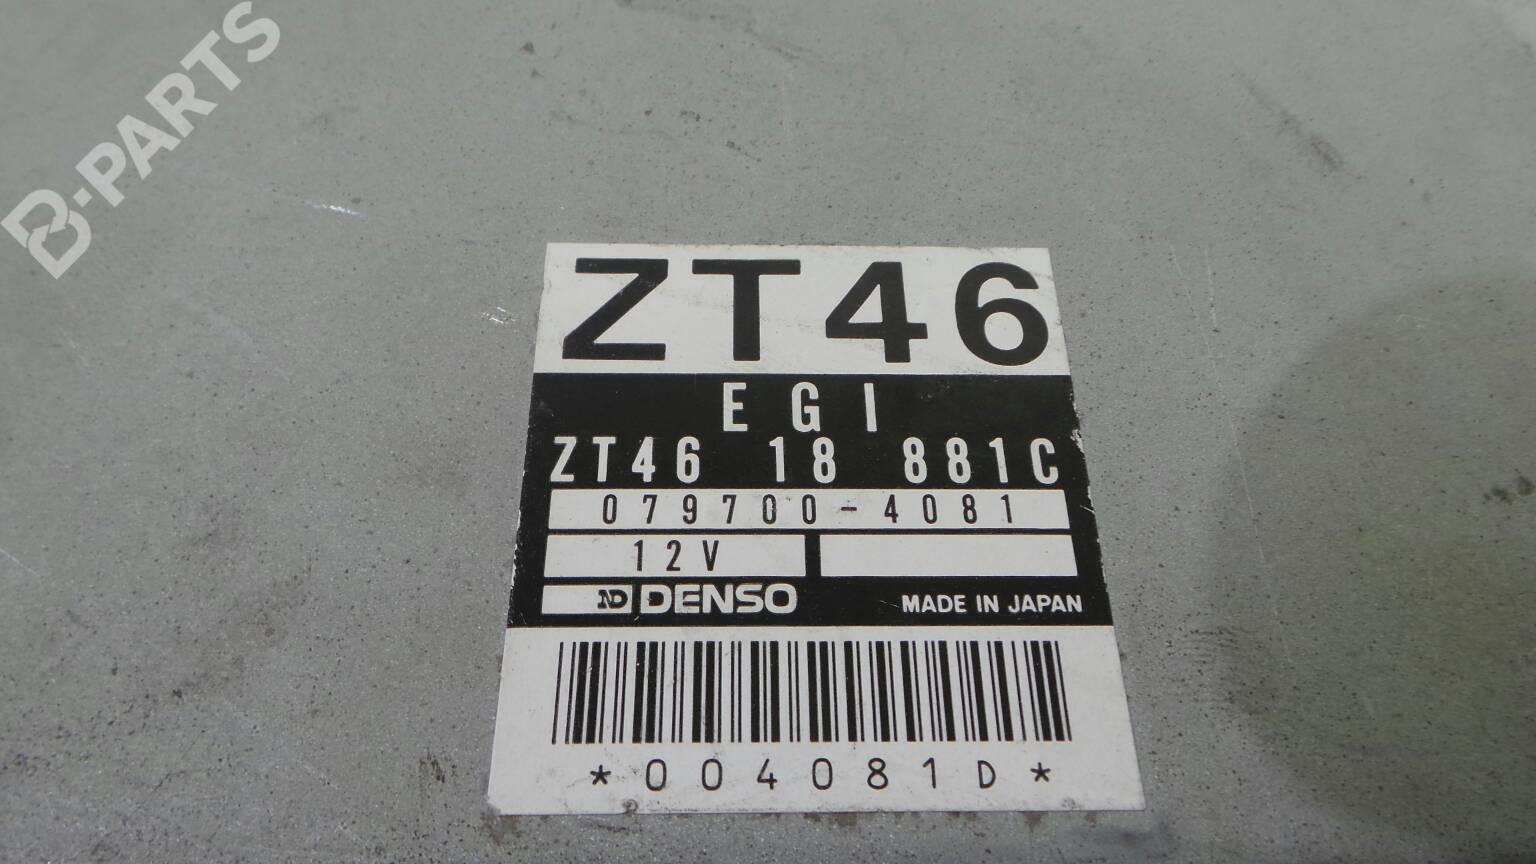 ... Engine ECU 079700-4081 KIA, SEPHIA (FA) 1.5 i(4 doors